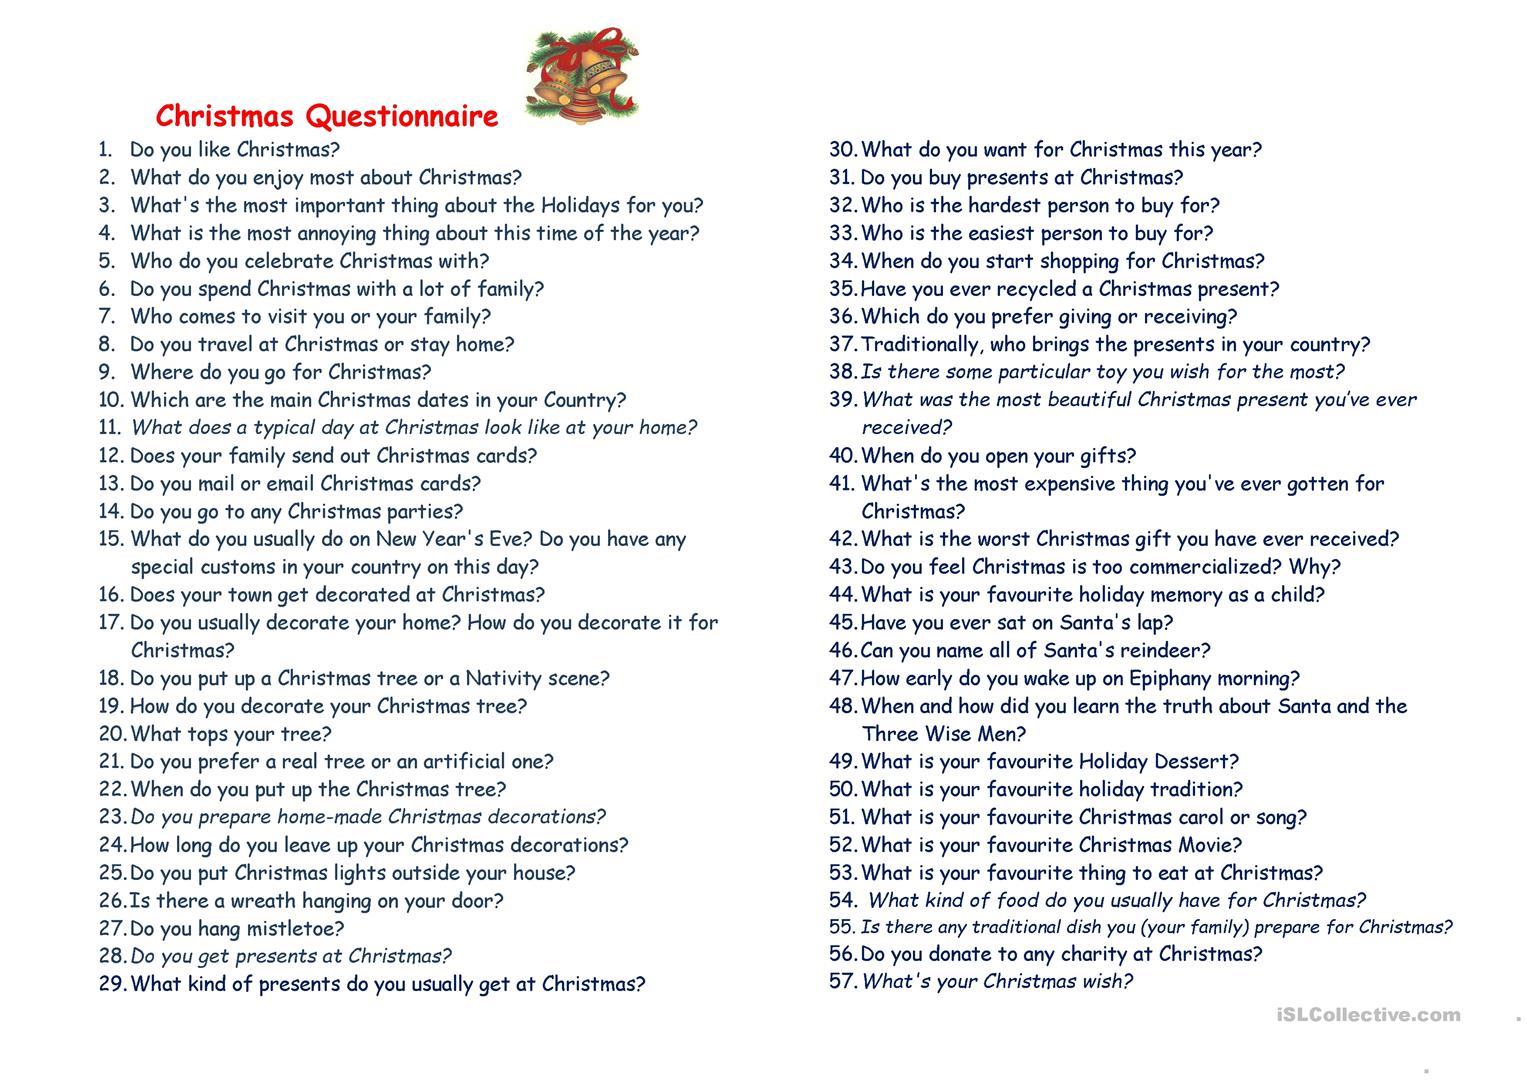 Christmas Questionnaire